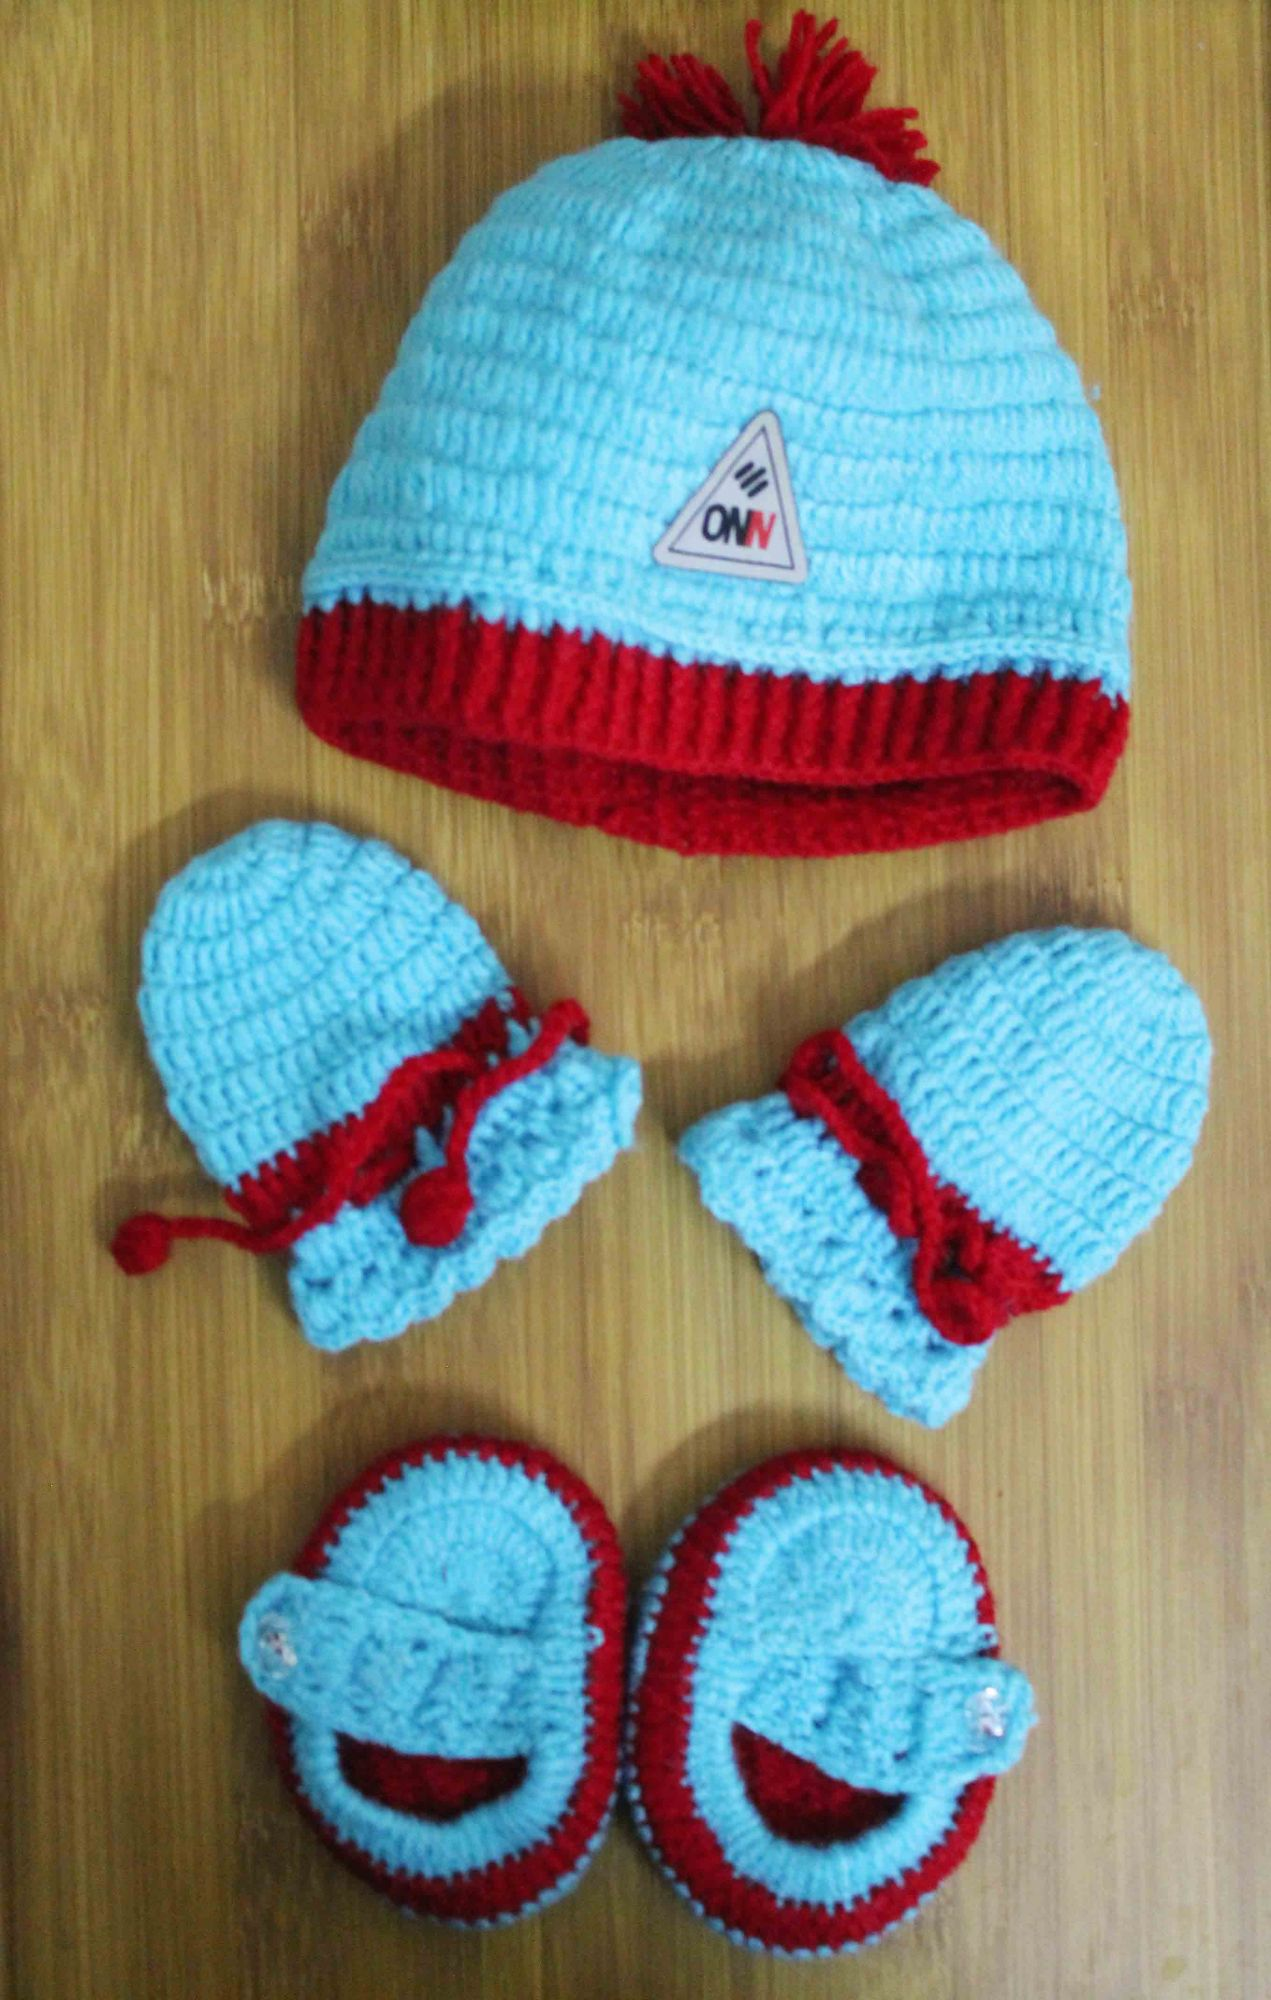 Blue and Red Woolen Cap with Matching Mittens and Booties